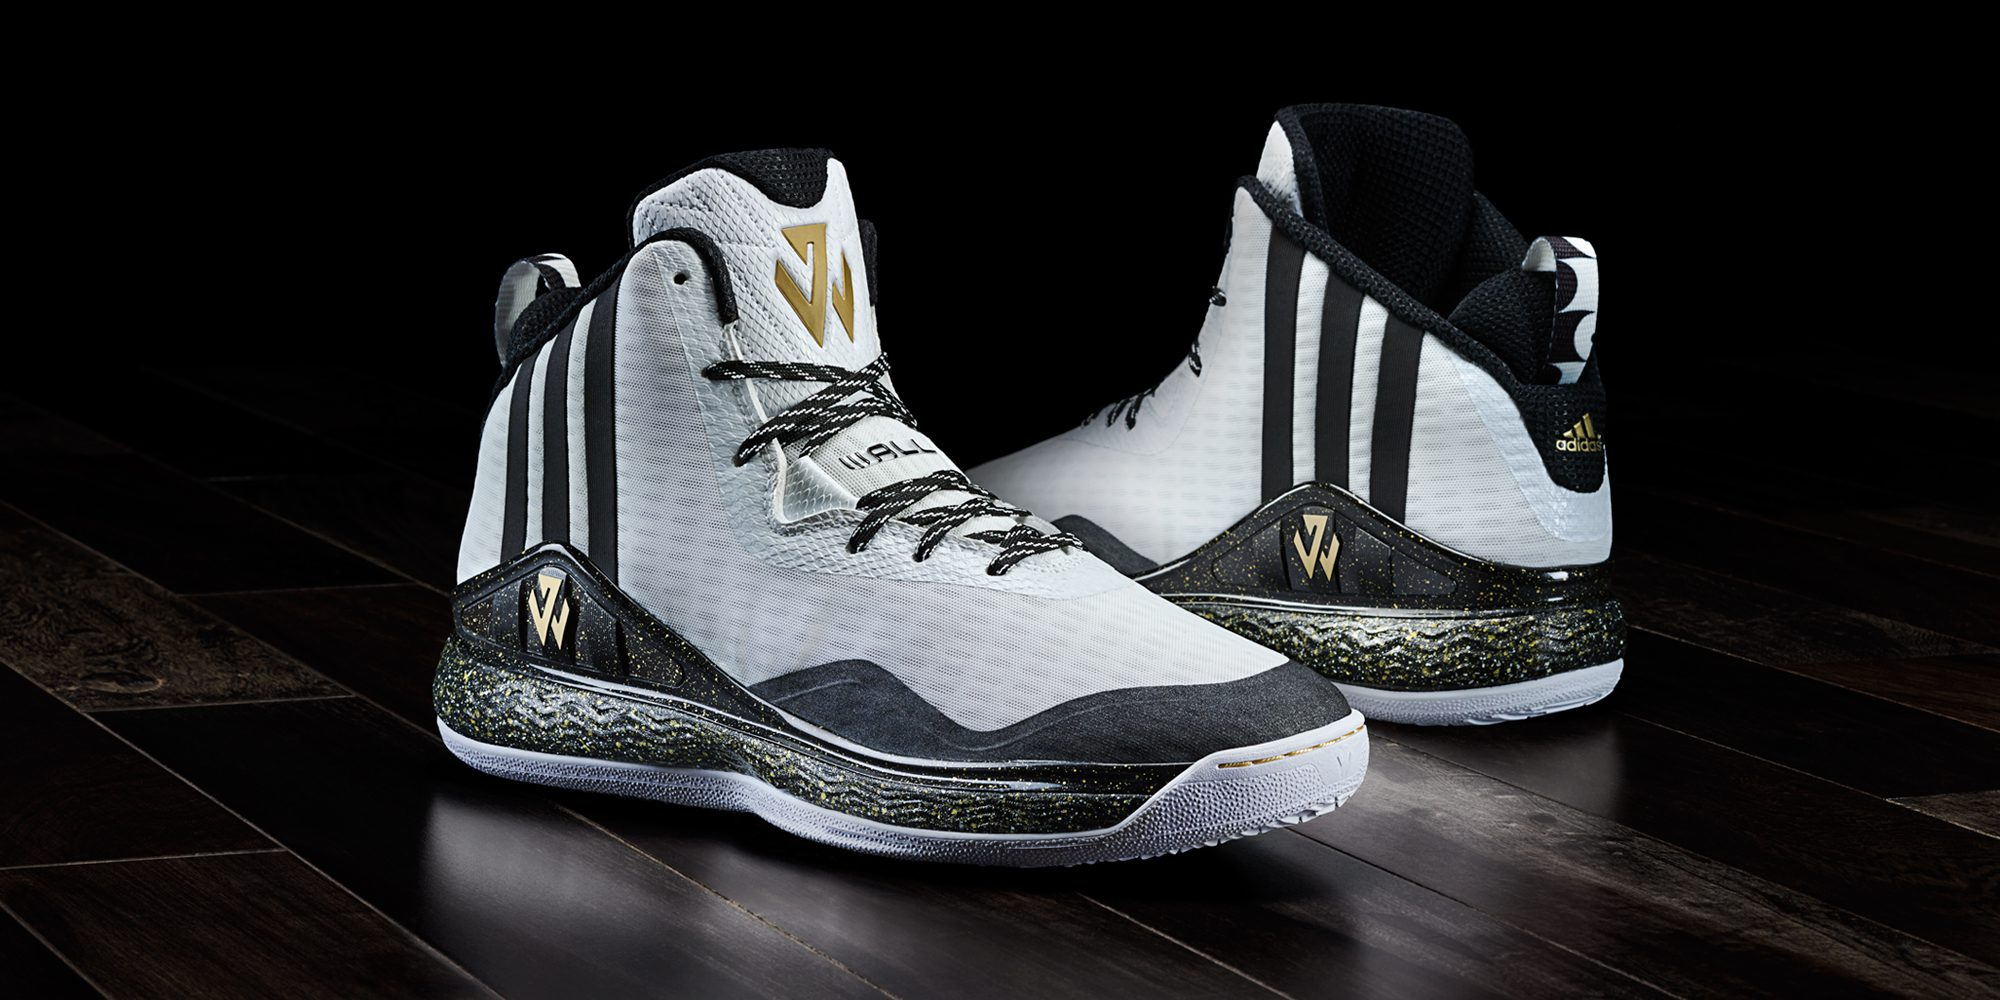 adidas J Wall 1 All-Star edition (S84020) Hero 2 H